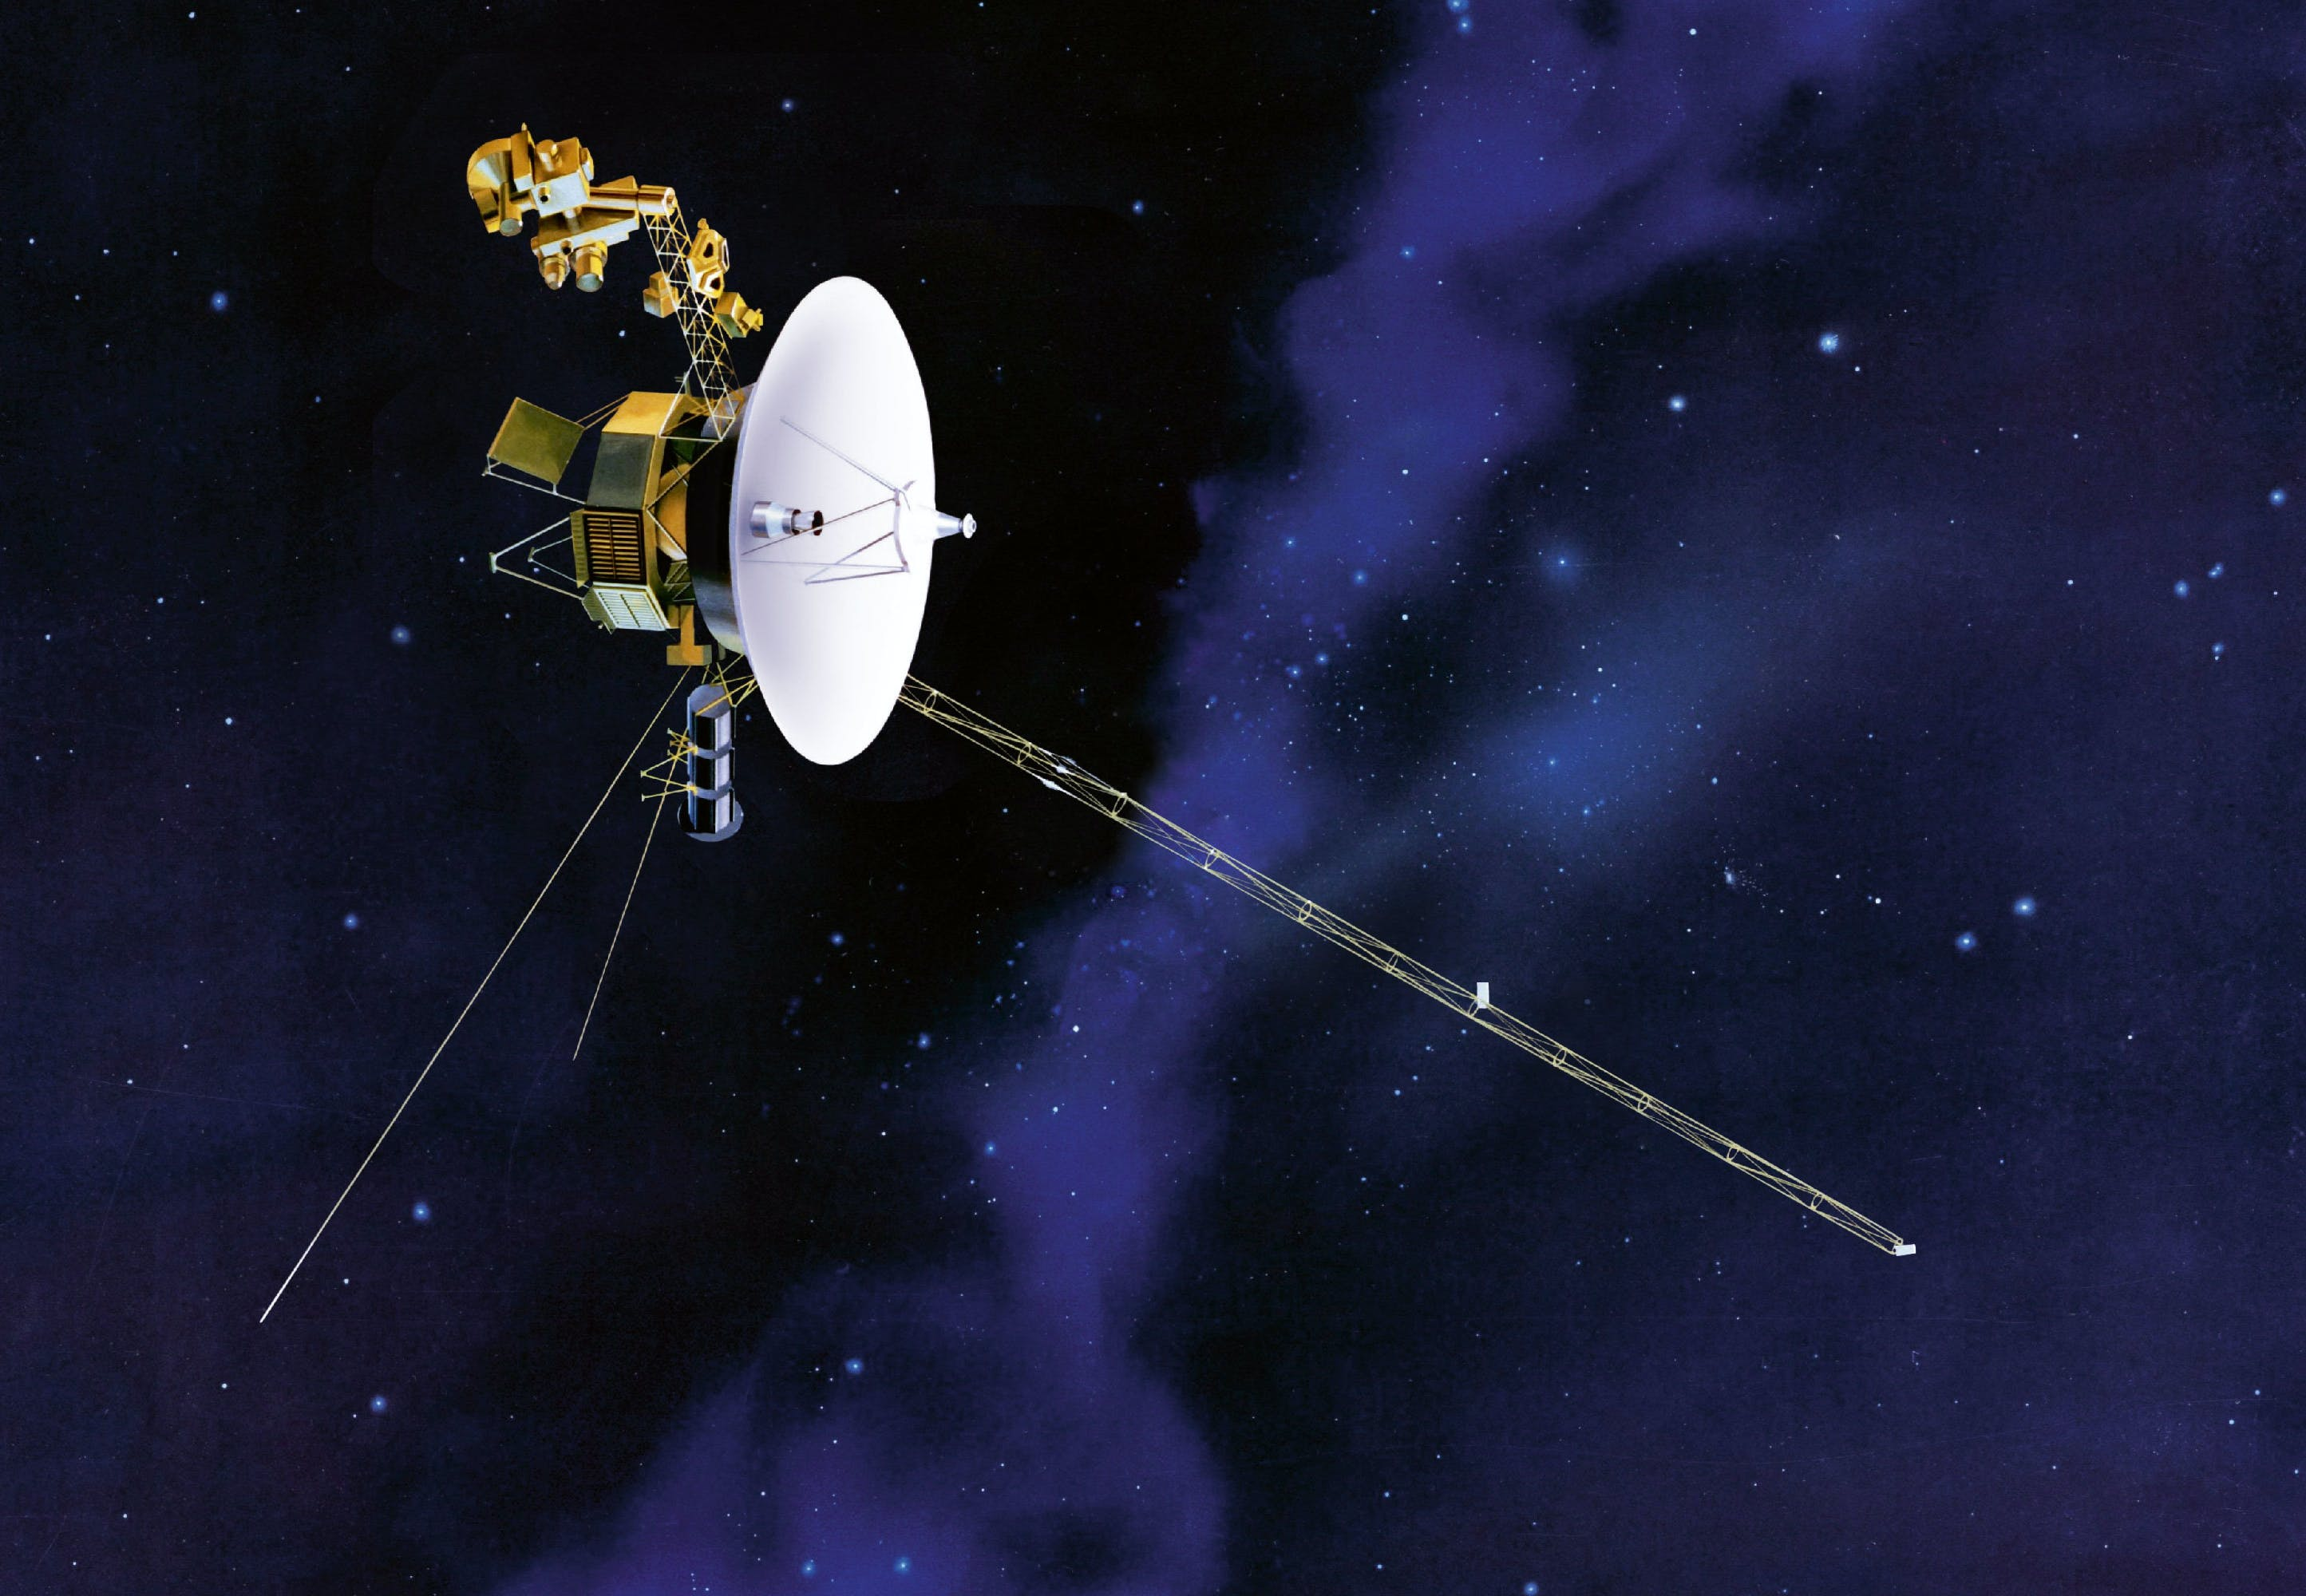 voyager 1 pic of mars - photo #11